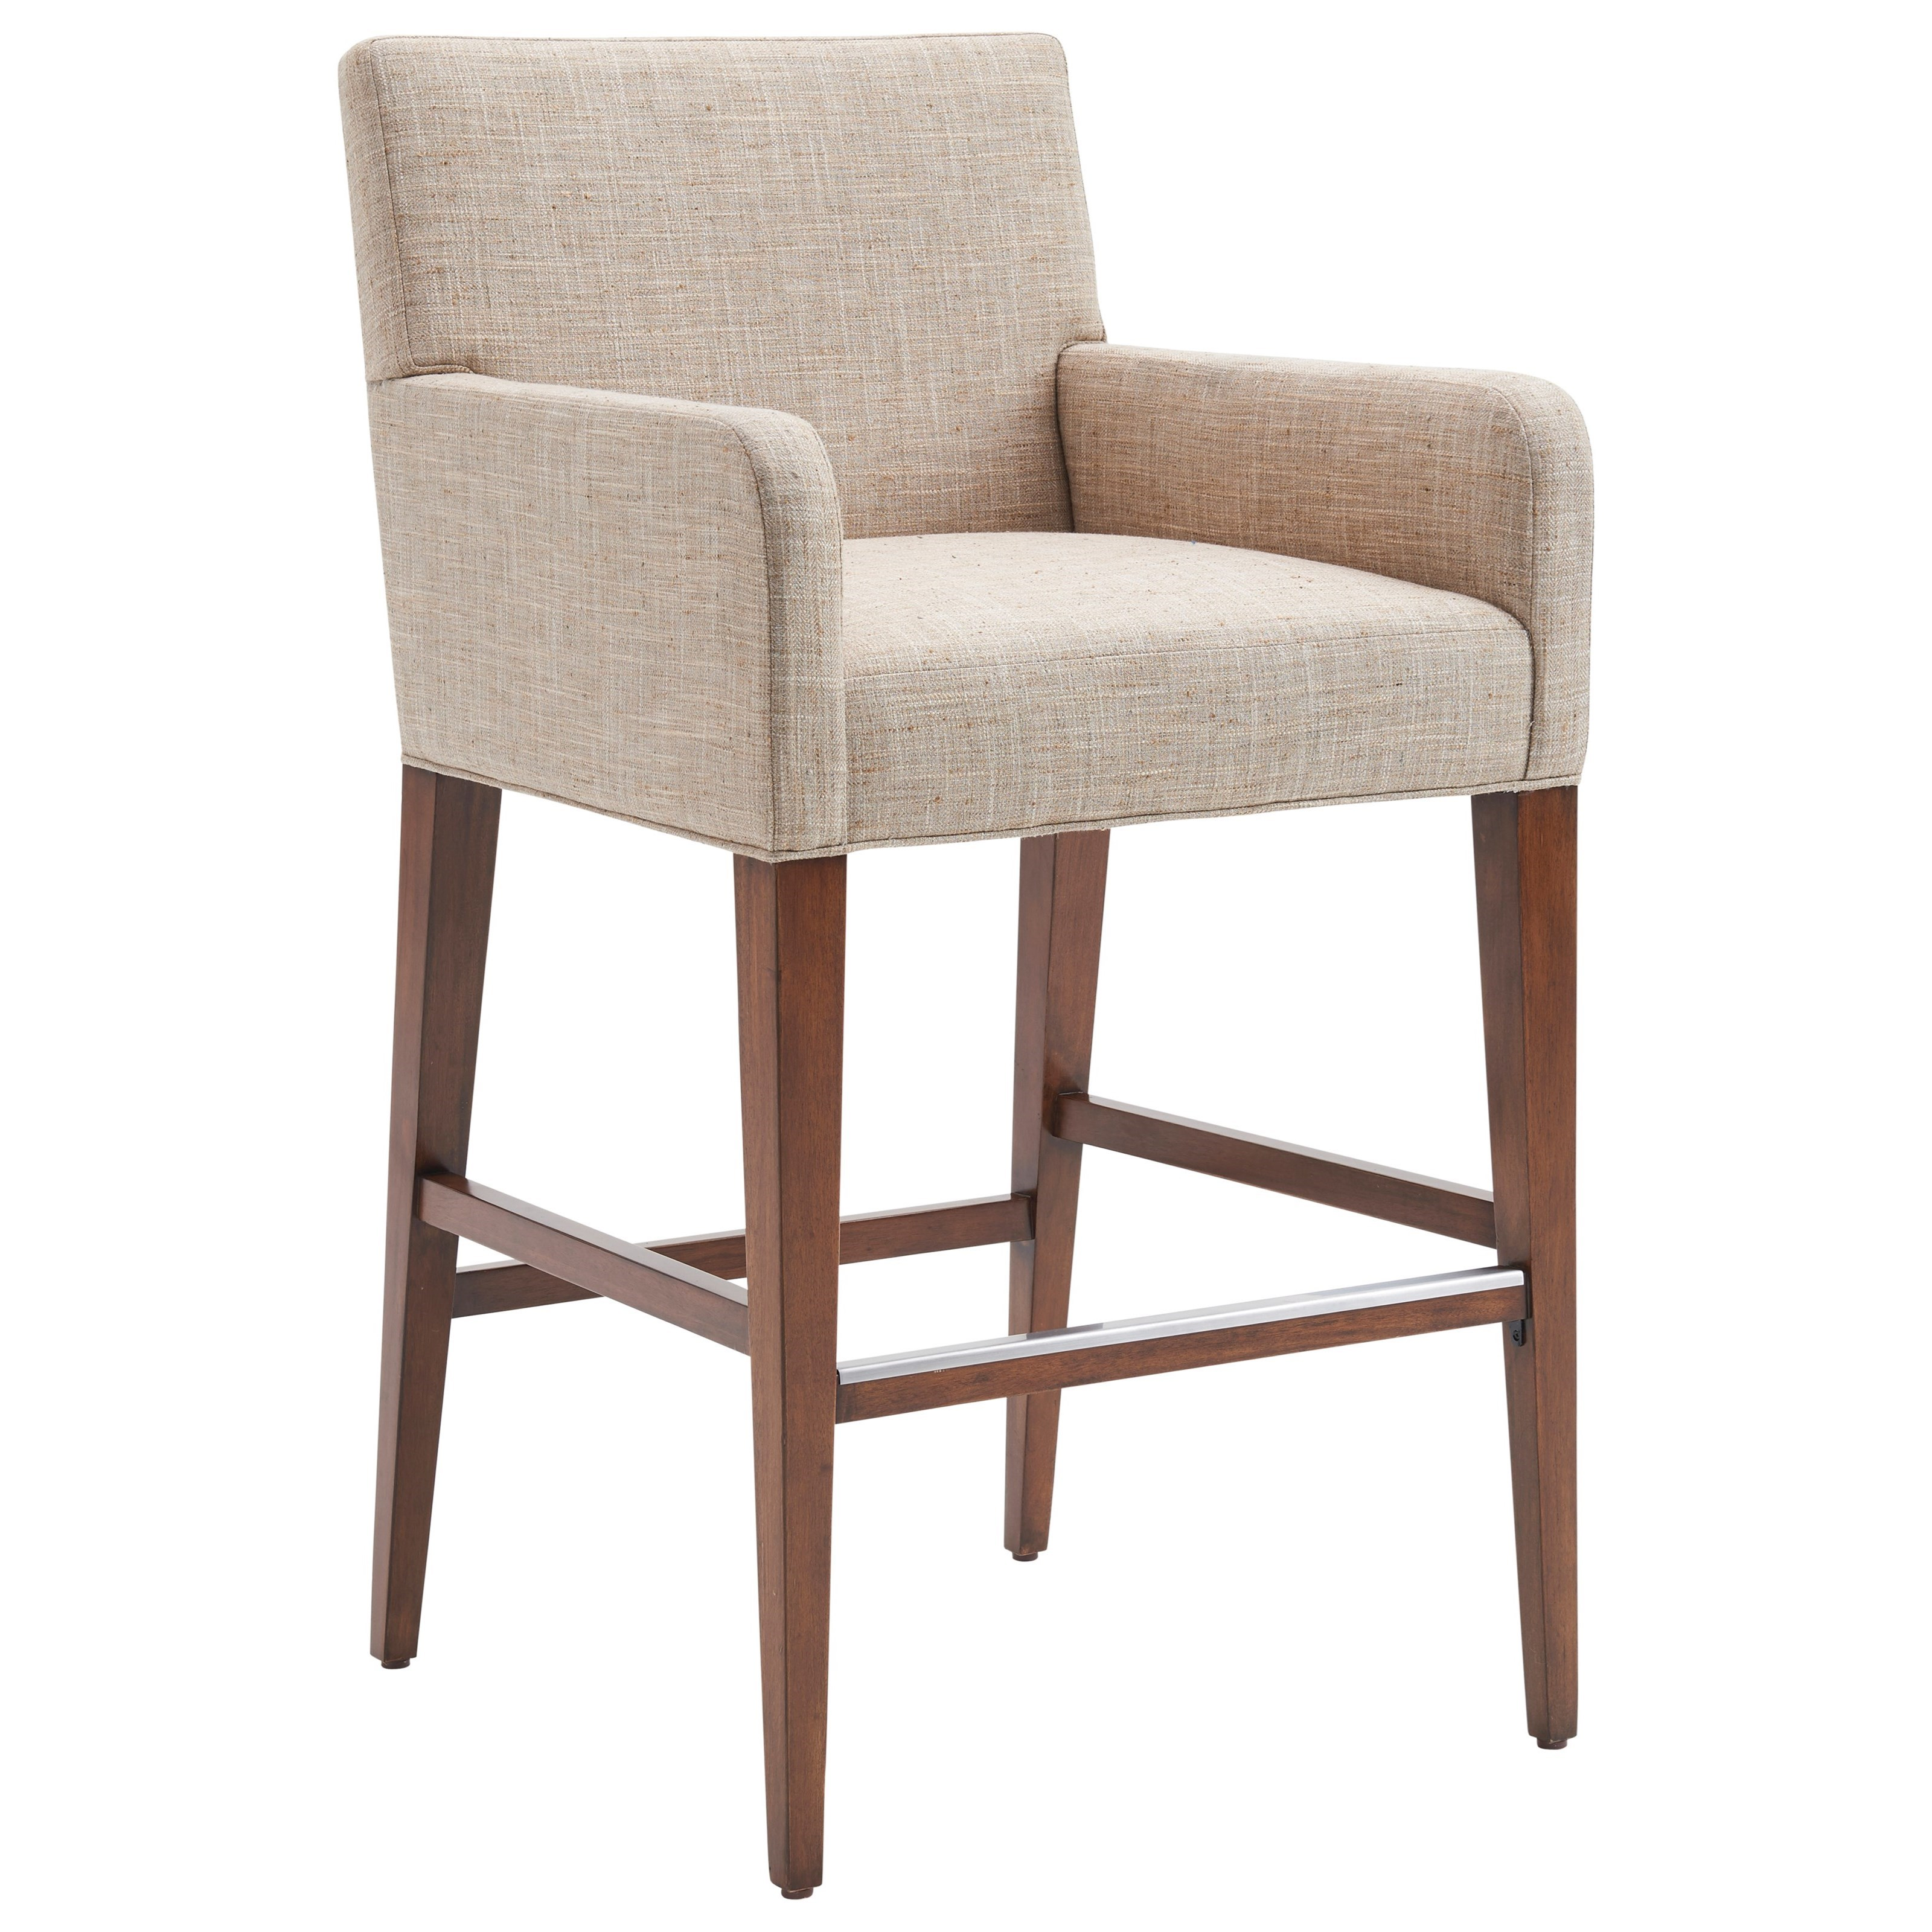 Kitano Perry Bar Stool by Lexington at Baer's Furniture